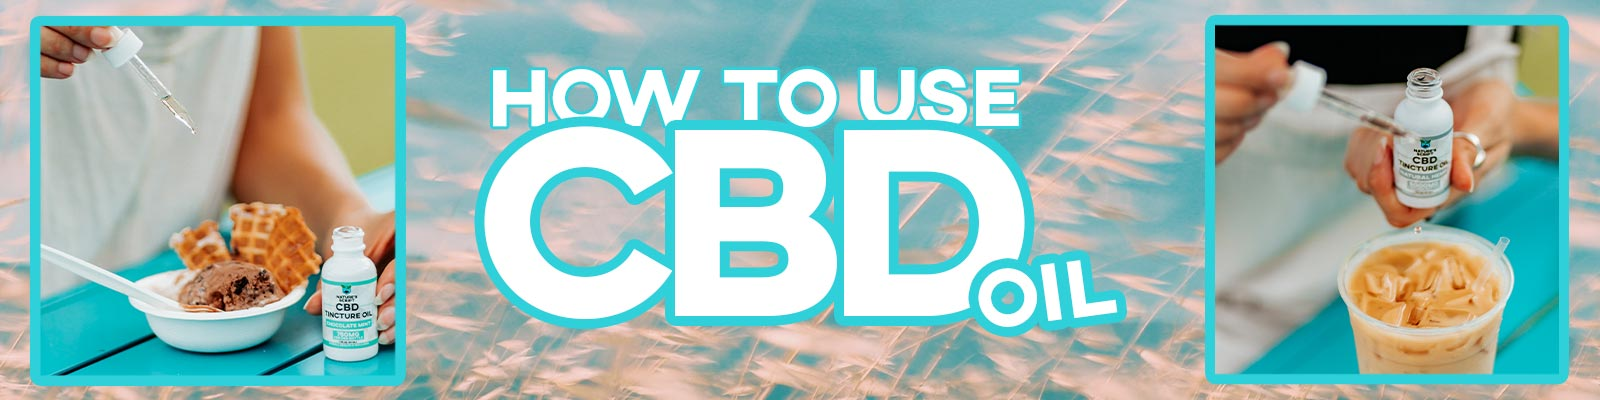 How to Use CBD Oil Nature's Script Banner